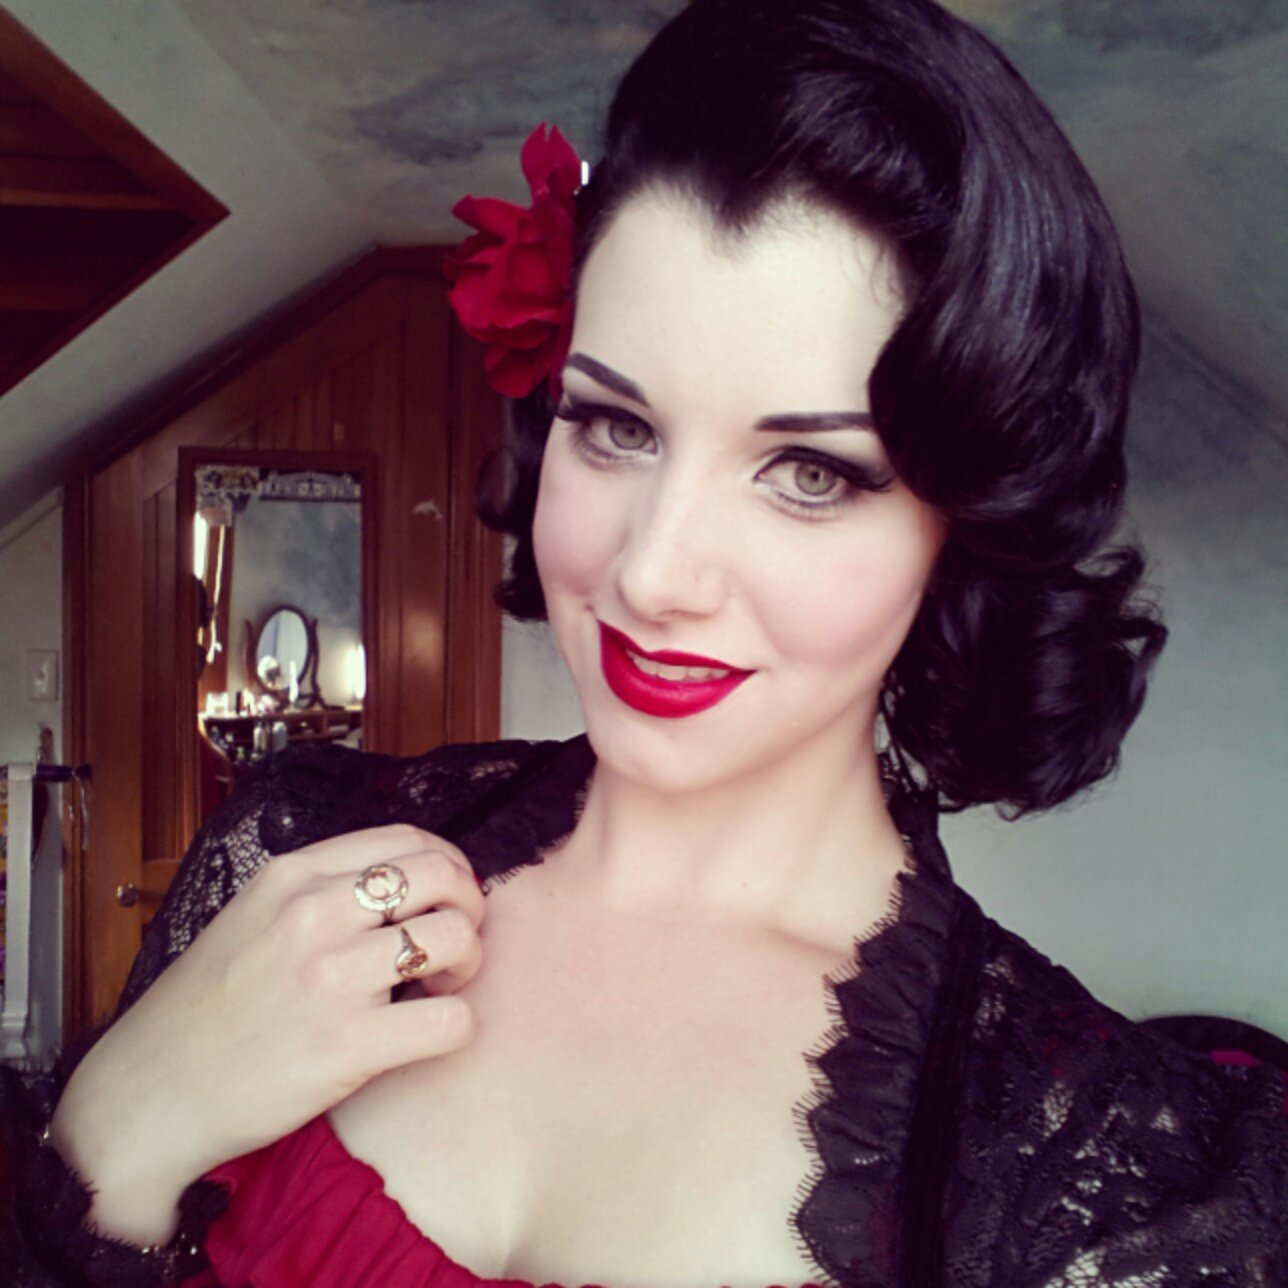 retro looking hairstyle for dark haired women   hairstyles